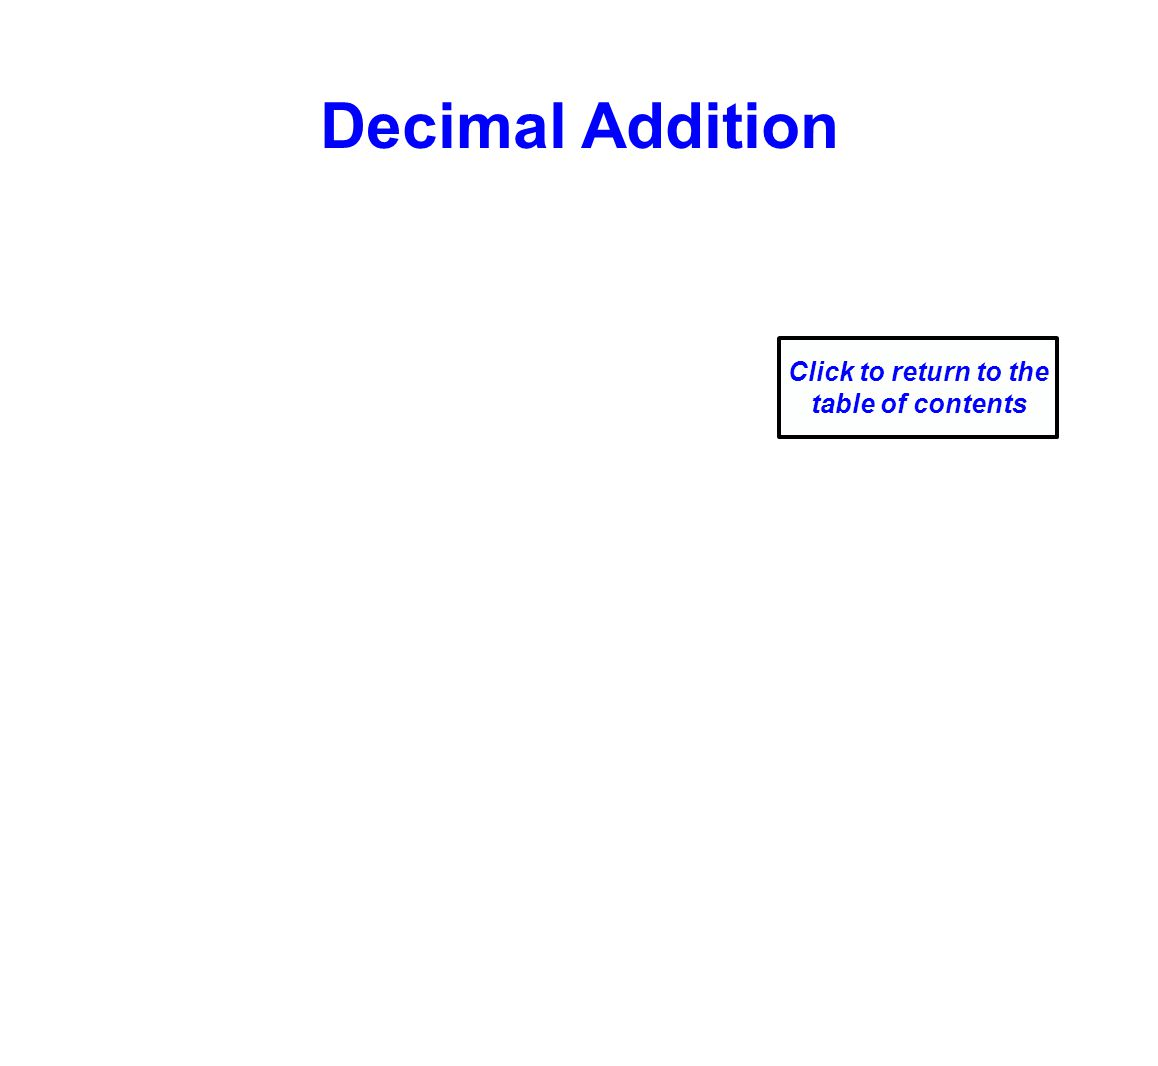 Decimal Addition Click to return to the table of contents